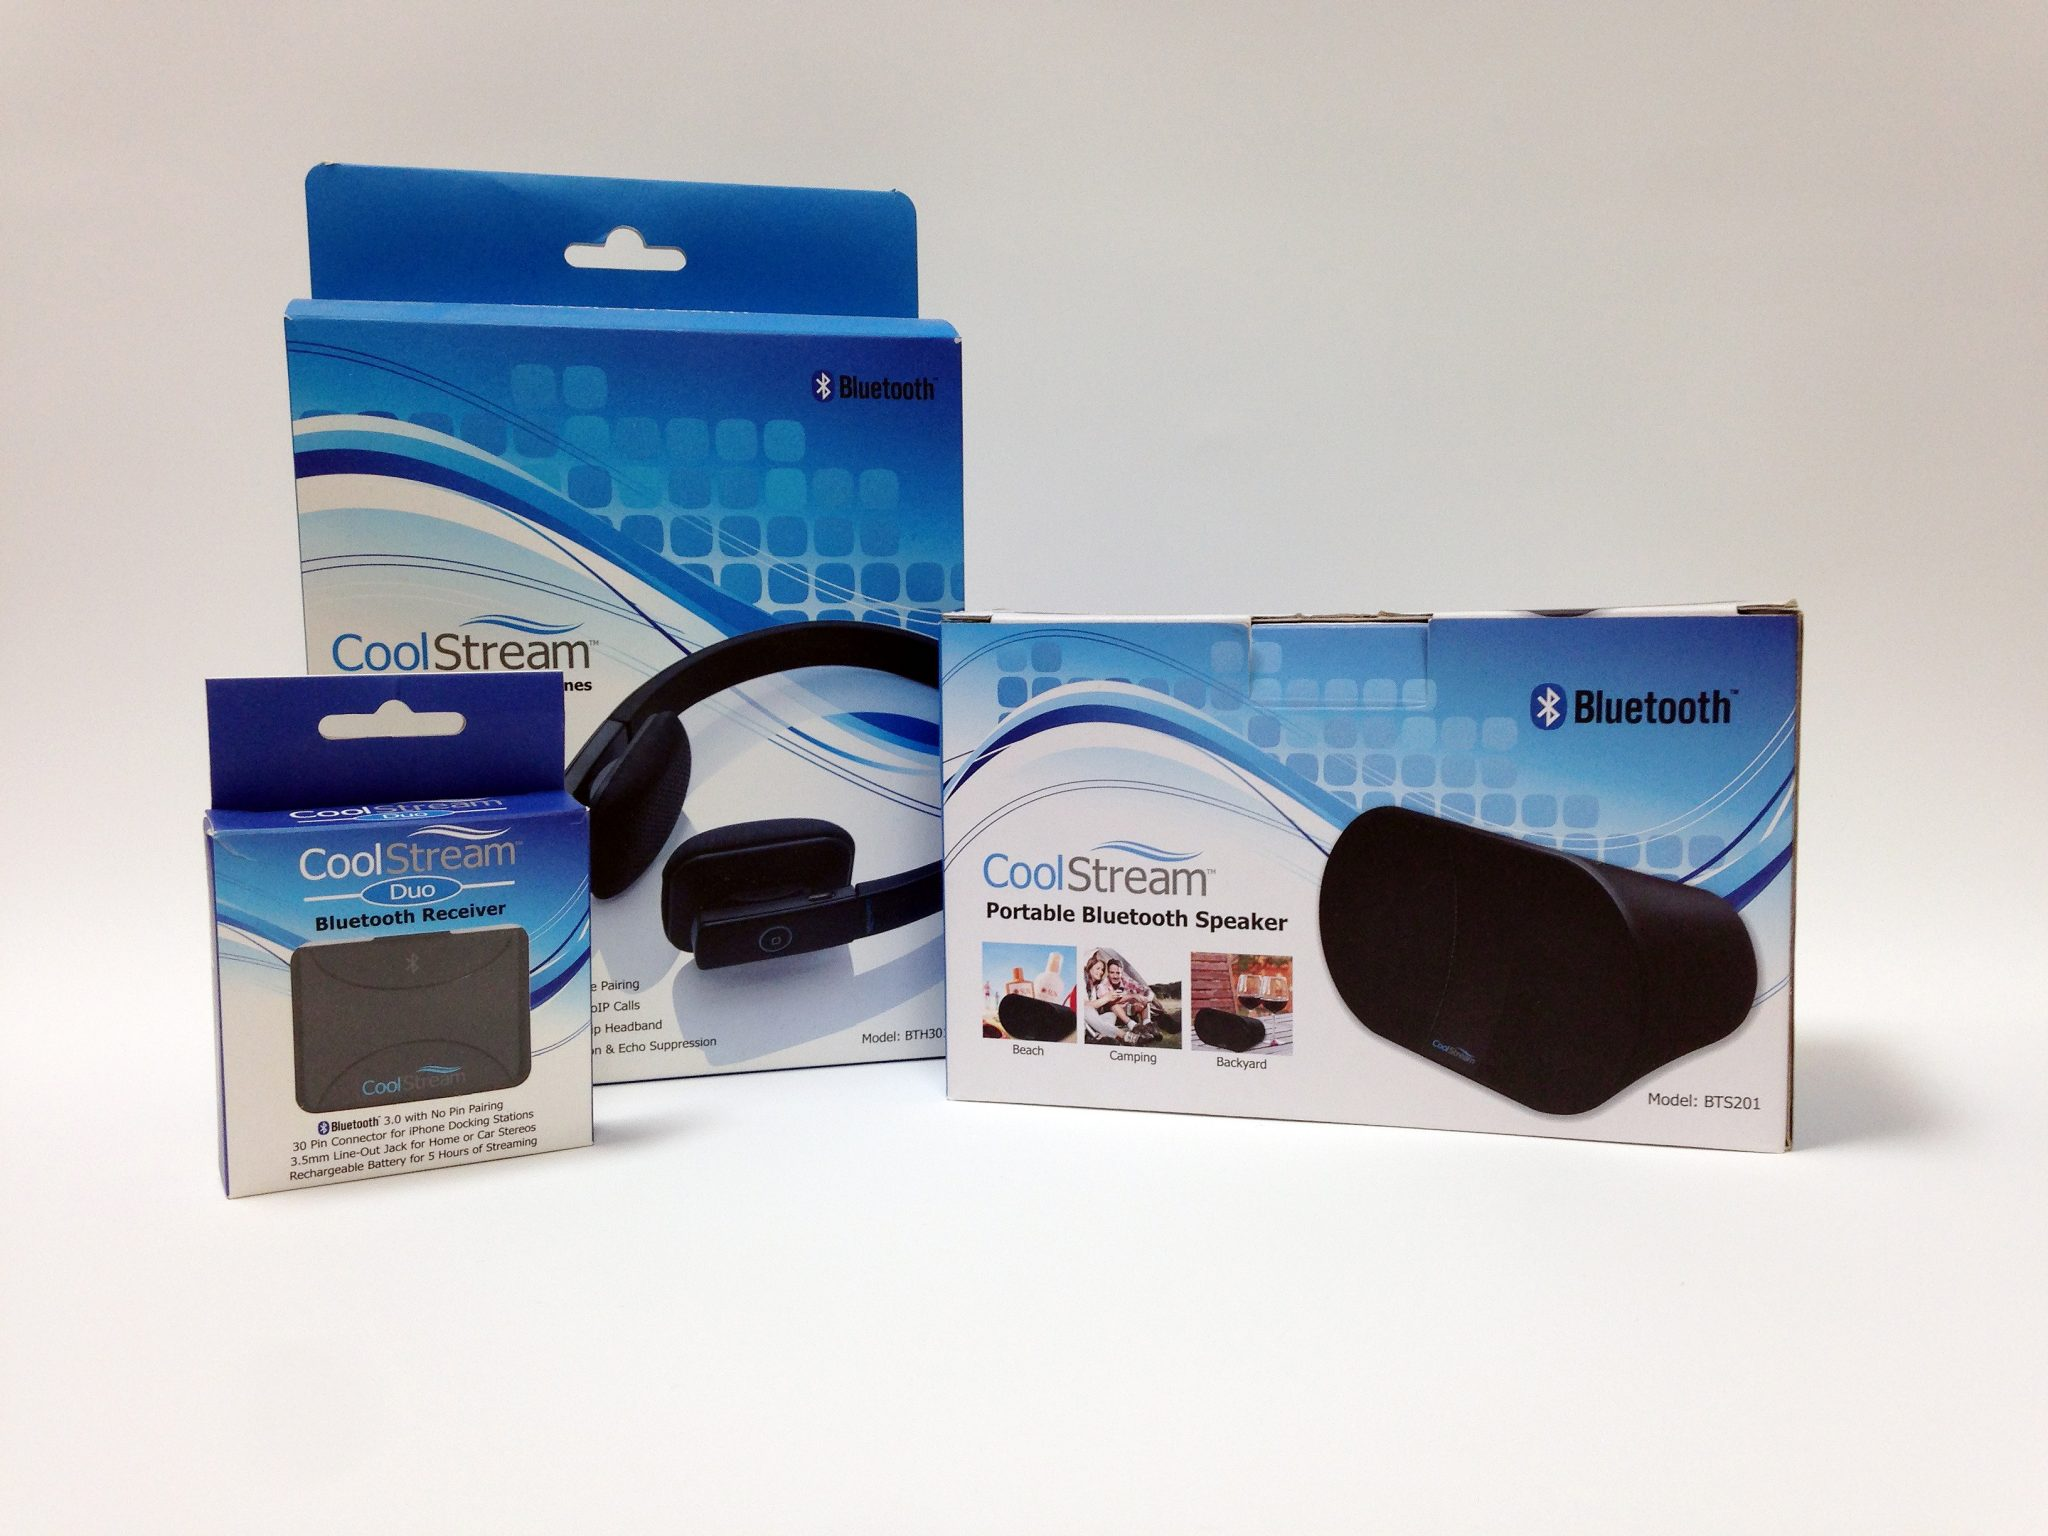 CoolStream Product Packages